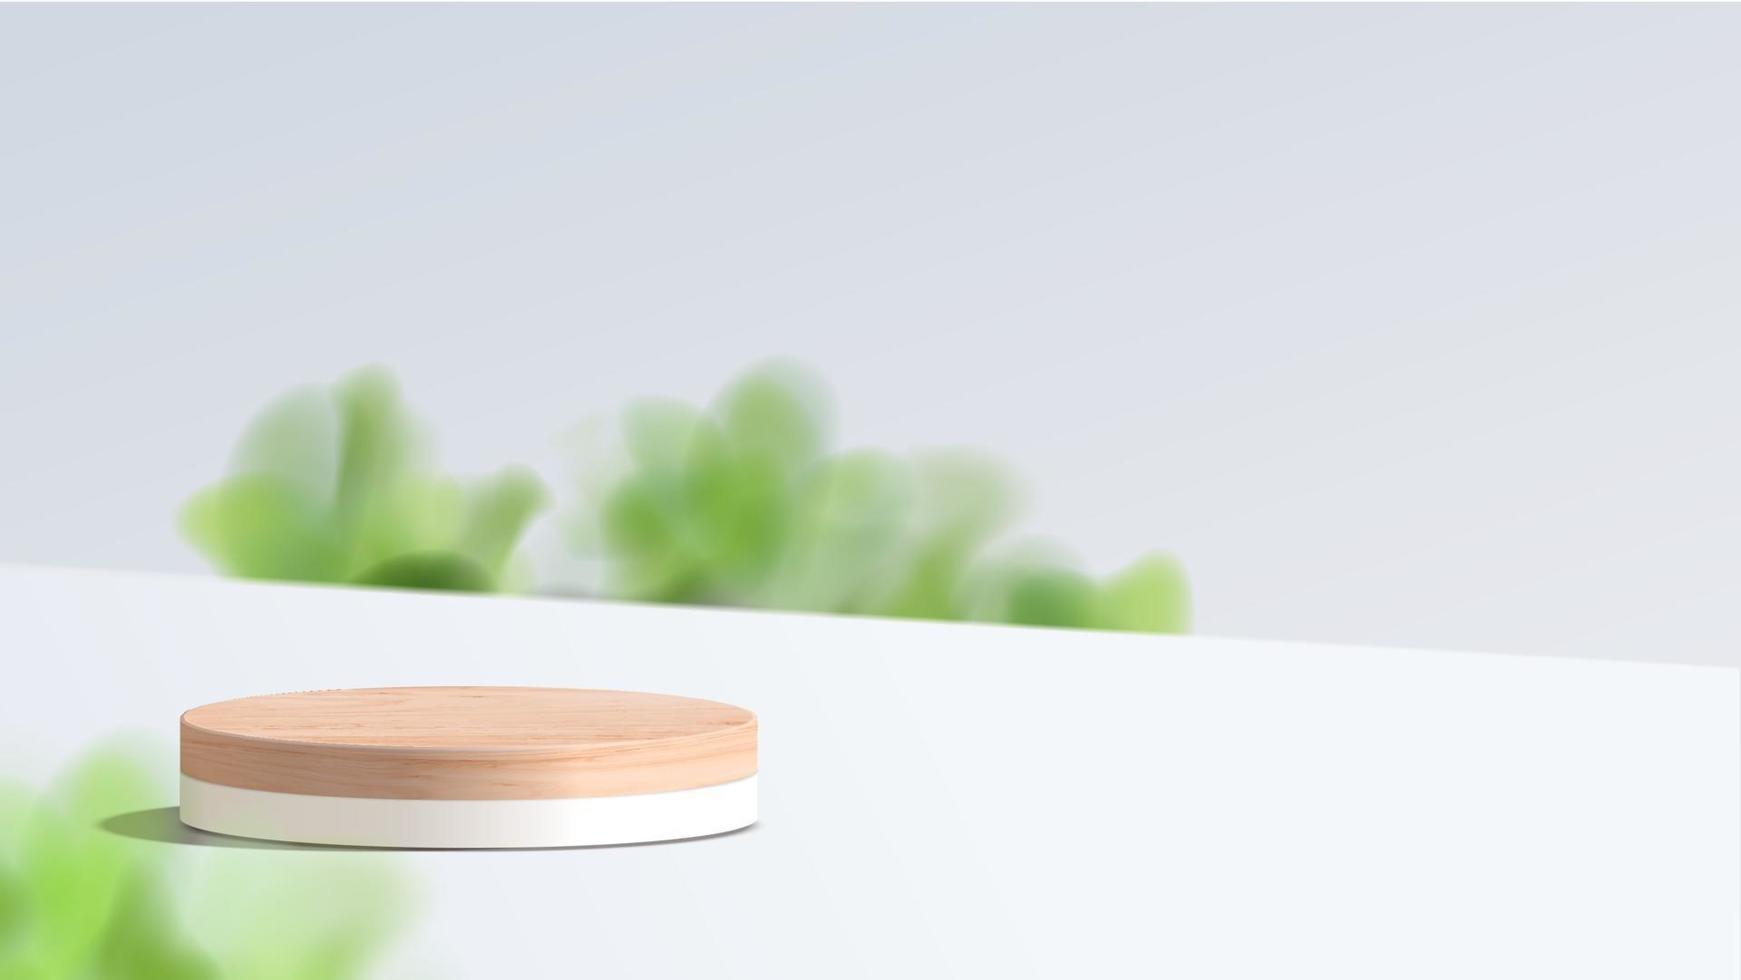 Abstract minimal scene with geometric forms. wood podium in white background. product presentation, mock up, show cosmetic product display, Podium, stage pedestal or platform. 3d vector